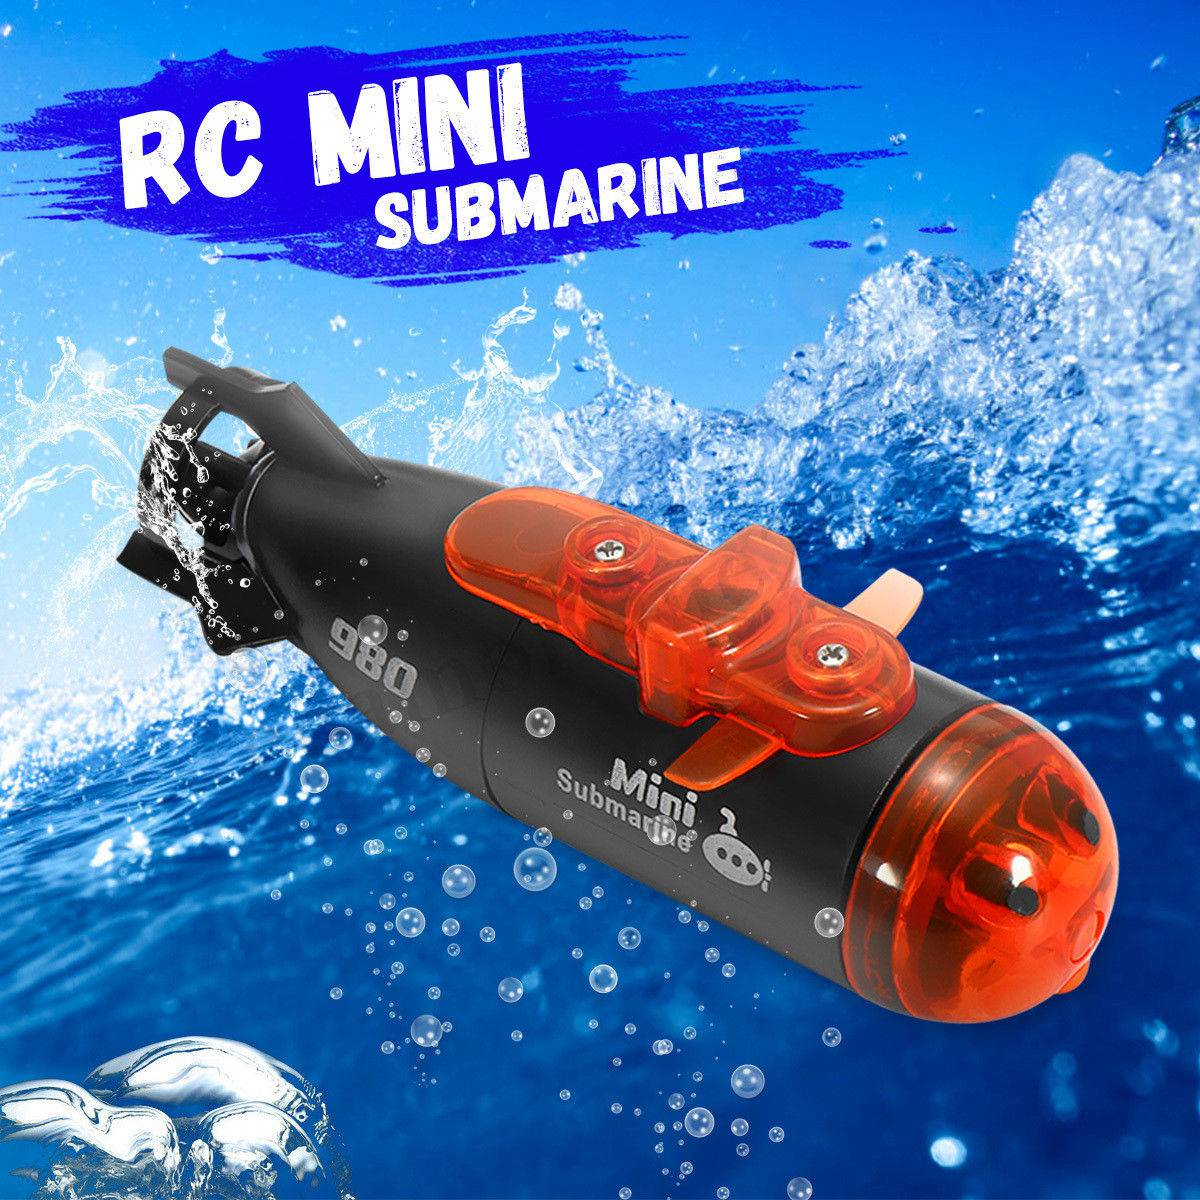 Mini Micro-Radio Remote Control RC Submarine Ship Boat With Led Light Toy Gift Remote Control Submarine For Children 4-15 Years